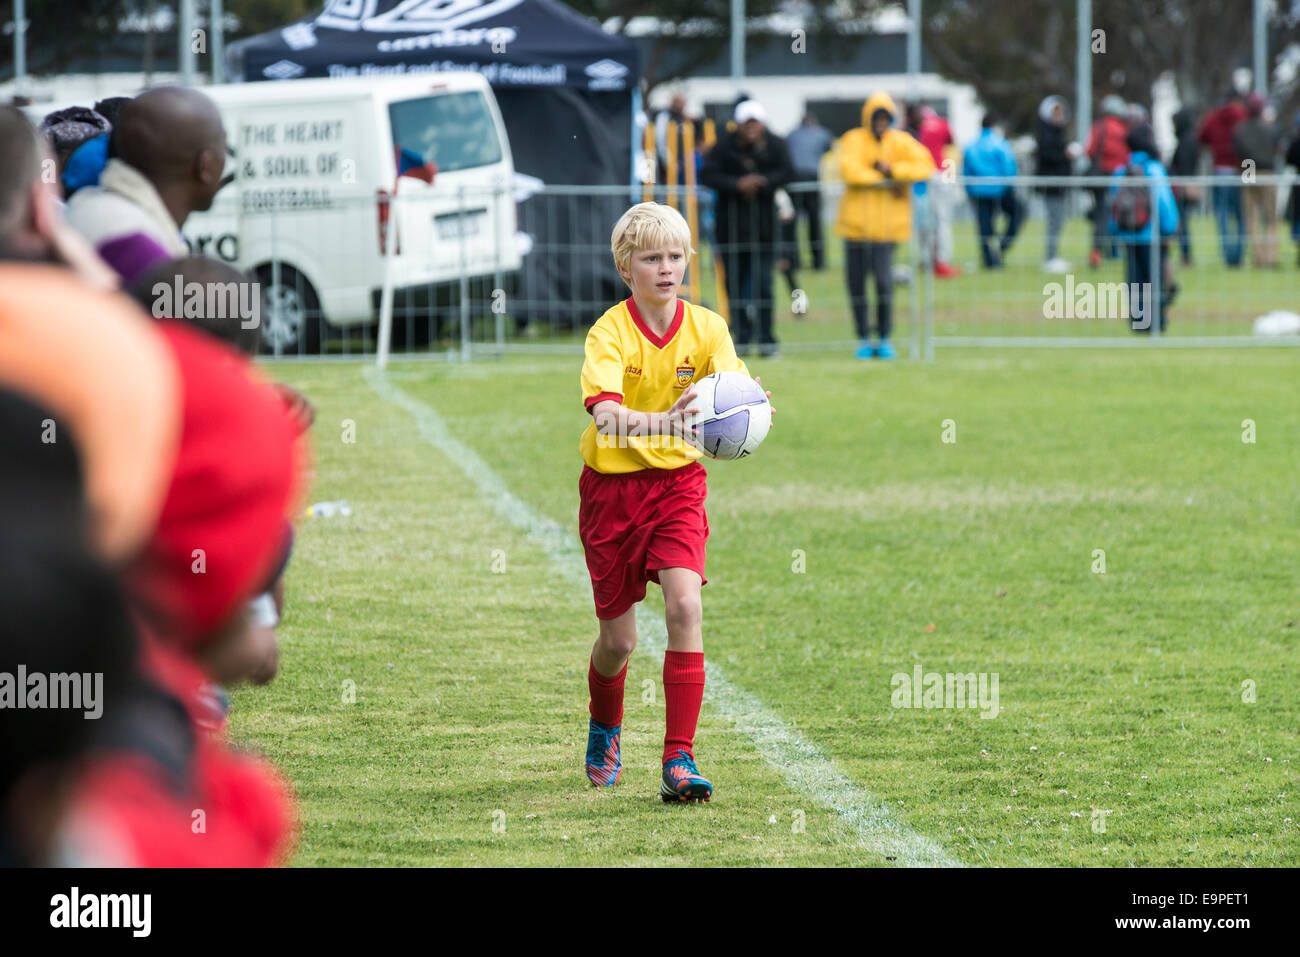 Junior football player making a throw-in, Cape Town, South Africa - Stock Image